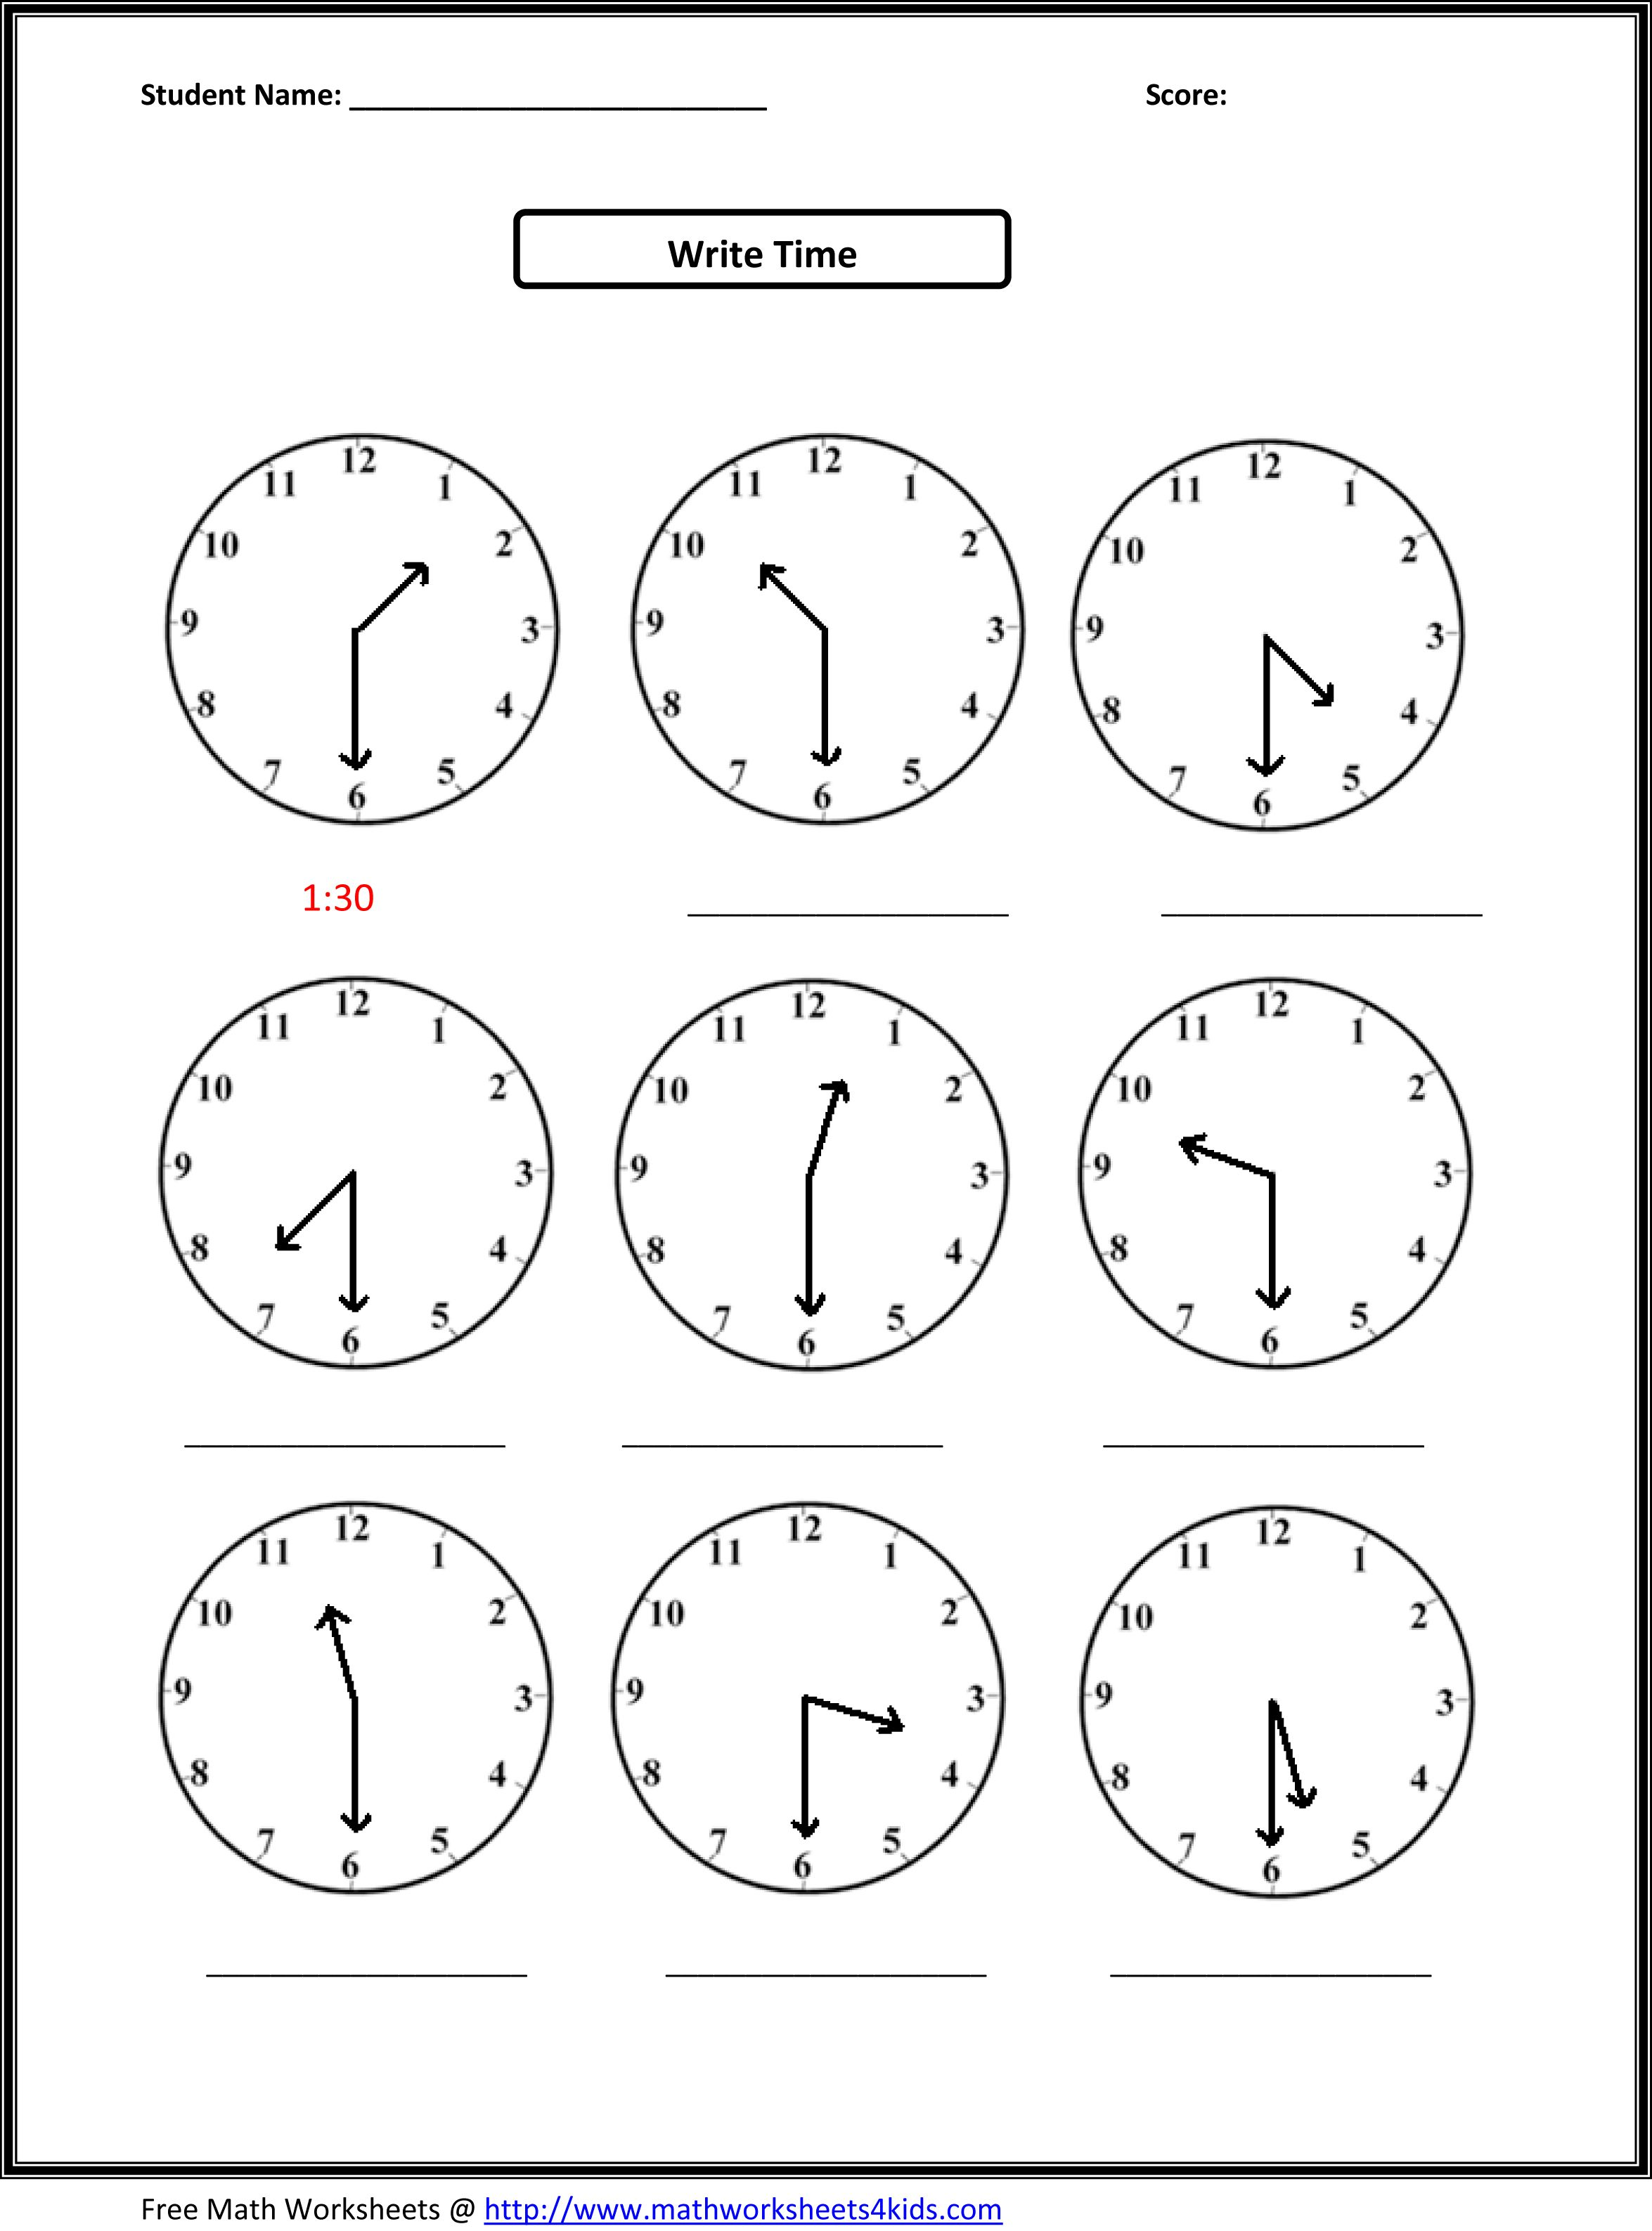 Weirdmailus  Splendid Worksheet On Time For Grade   Reocurent With Lovable Free Printable Telling Time Worksheets Nd Grade  Reocurent With Amazing Healthy Relationships Worksheet Also Gallery Walk Worksheet In Addition Number  Worksheets And Mitosis Worksheet   Diagram Identification Answers As Well As Solving Equations And Inequalities Worksheet Additionally Transversals Worksheet From Reocurentcom With Weirdmailus  Lovable Worksheet On Time For Grade   Reocurent With Amazing Free Printable Telling Time Worksheets Nd Grade  Reocurent And Splendid Healthy Relationships Worksheet Also Gallery Walk Worksheet In Addition Number  Worksheets From Reocurentcom